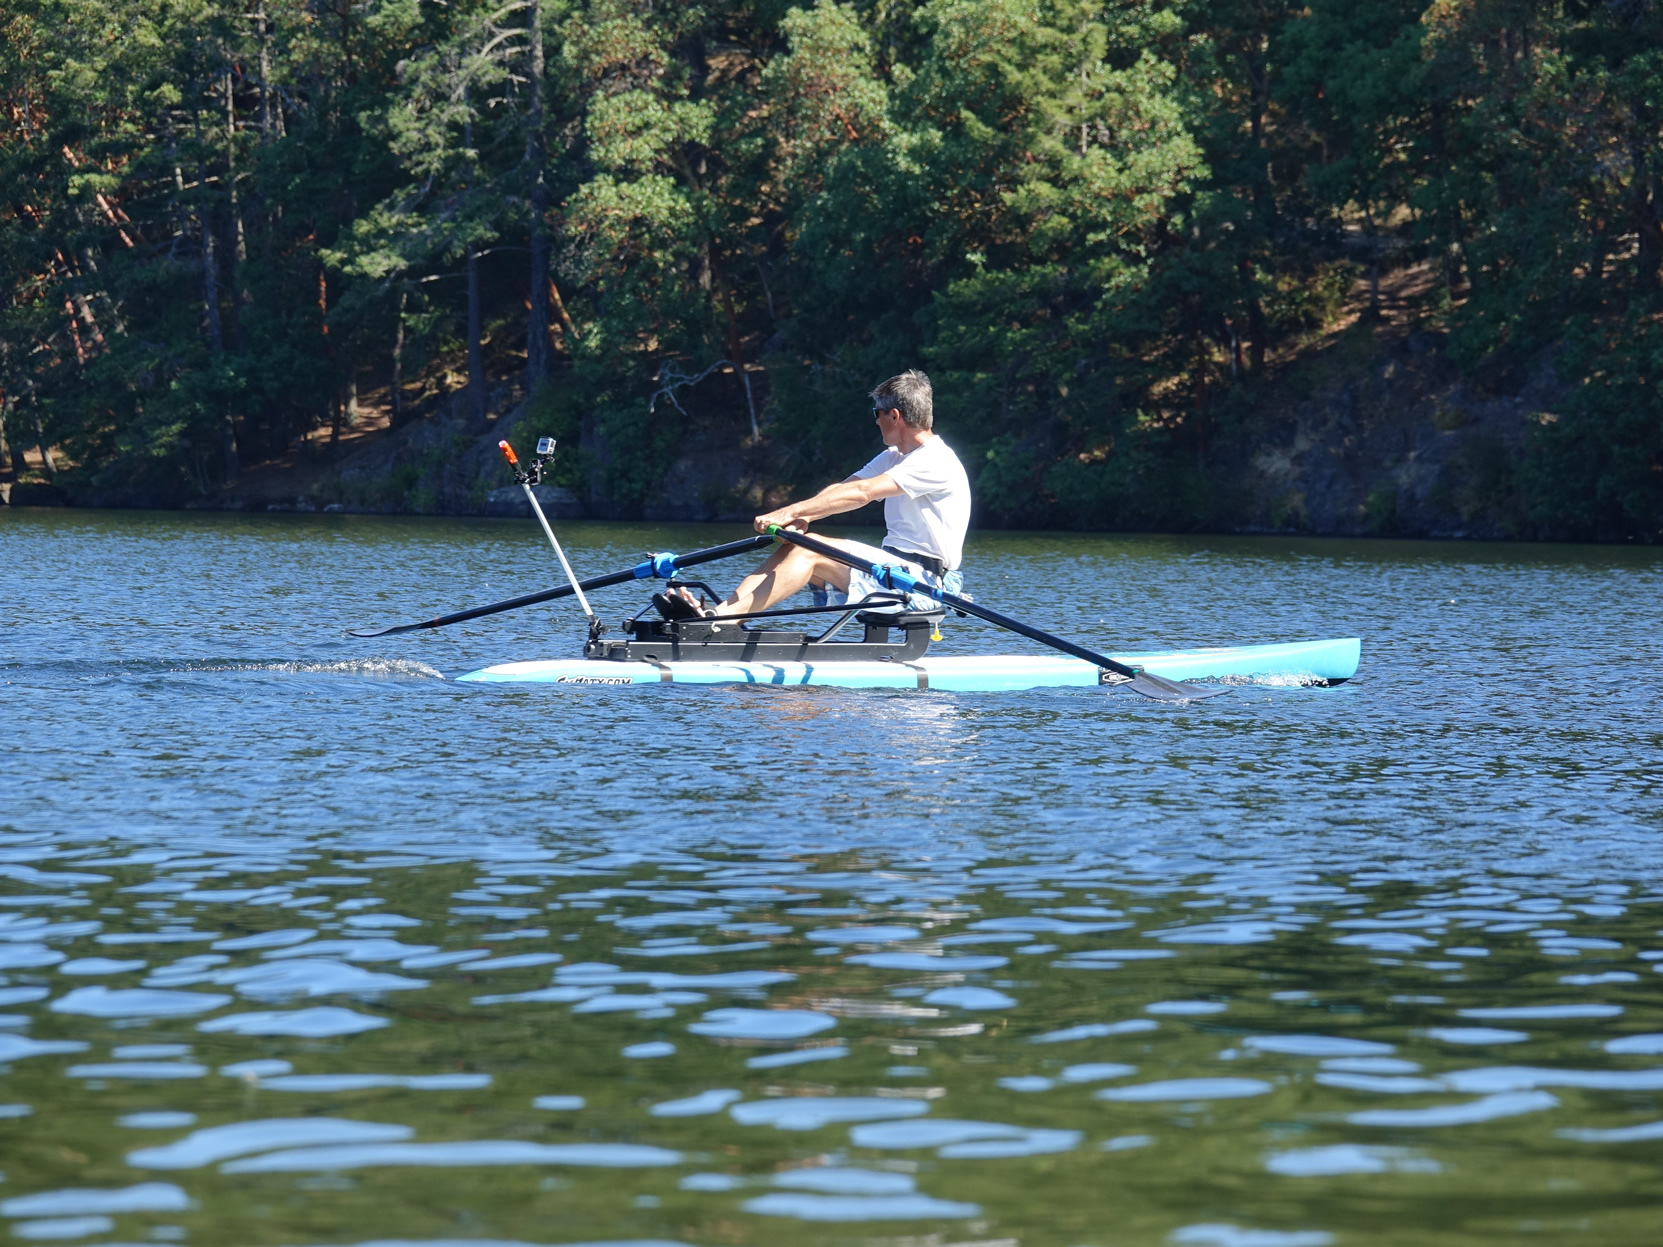 Lifestyle, Cottage Country Ontario, Standup Paddle Board, Oar Board Rower, Whitehall Rowing and Sail